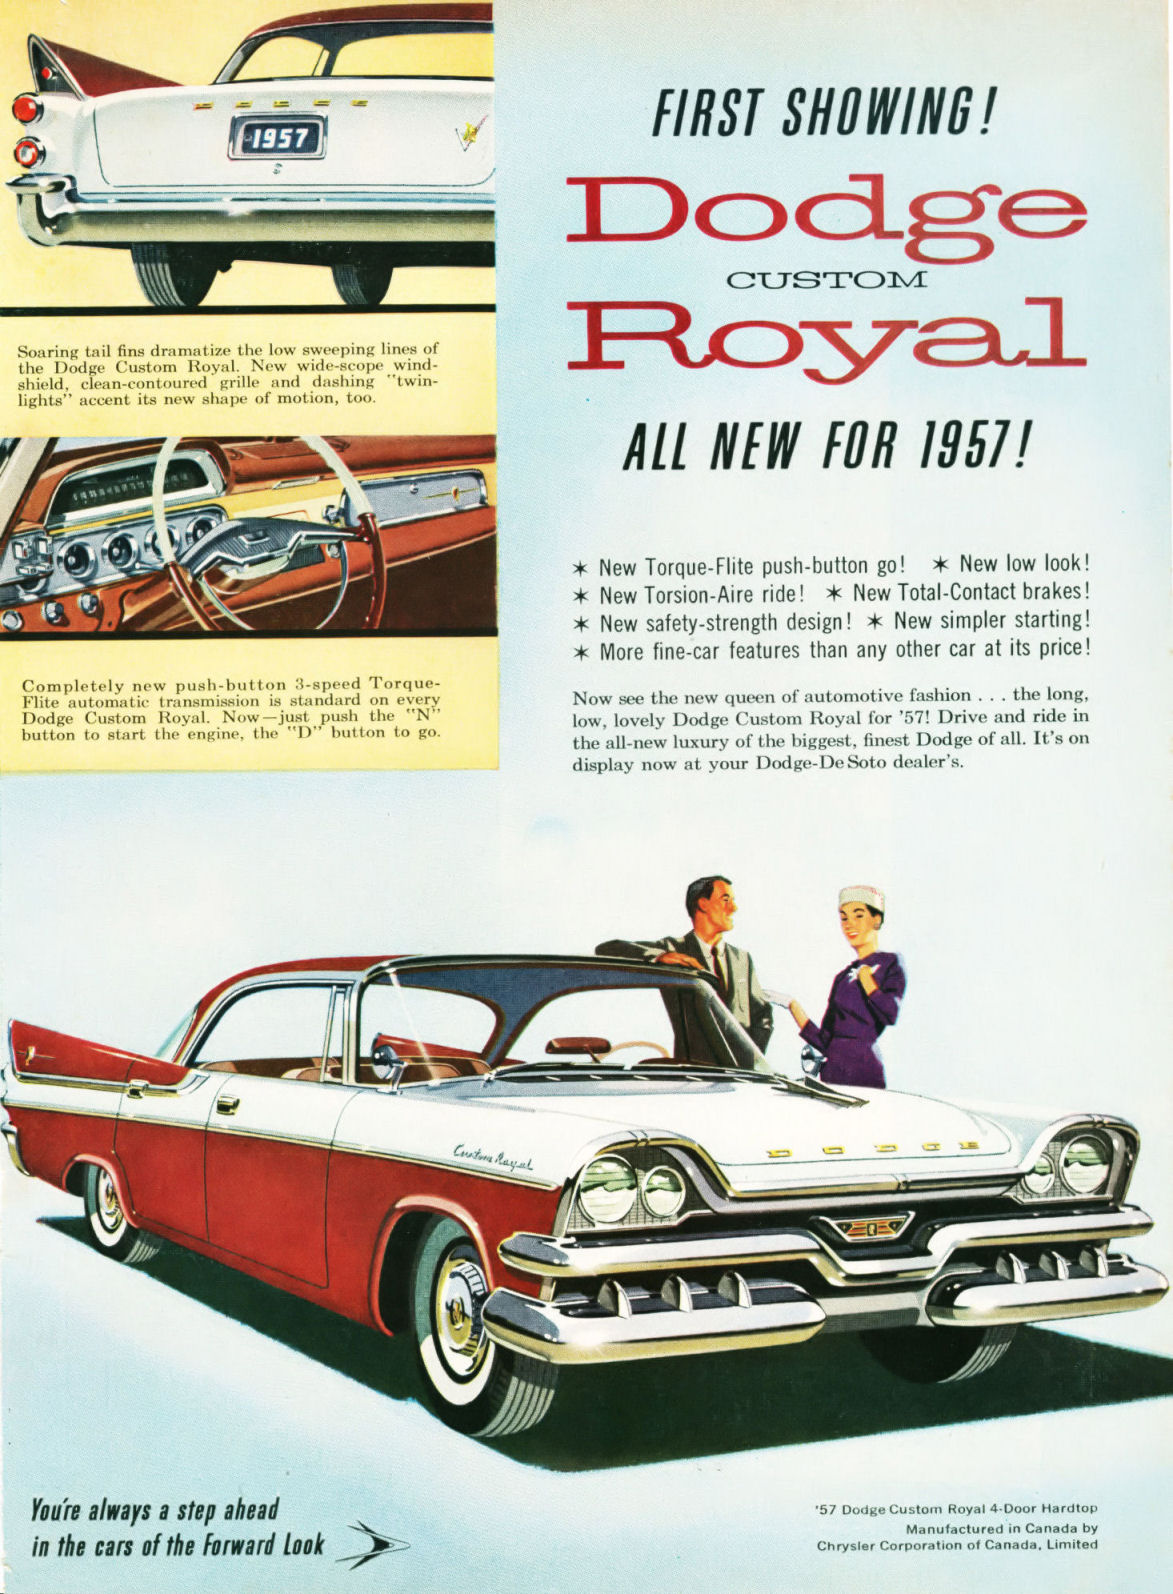 Victory Homes For The Vet 2 together with 8590044788 besides Cars112 together with Curbside Classic 1958 Continental Mark Iii The Partys Over furthermore Burger King So Delightfully Different 1966. on american car ads 1950s